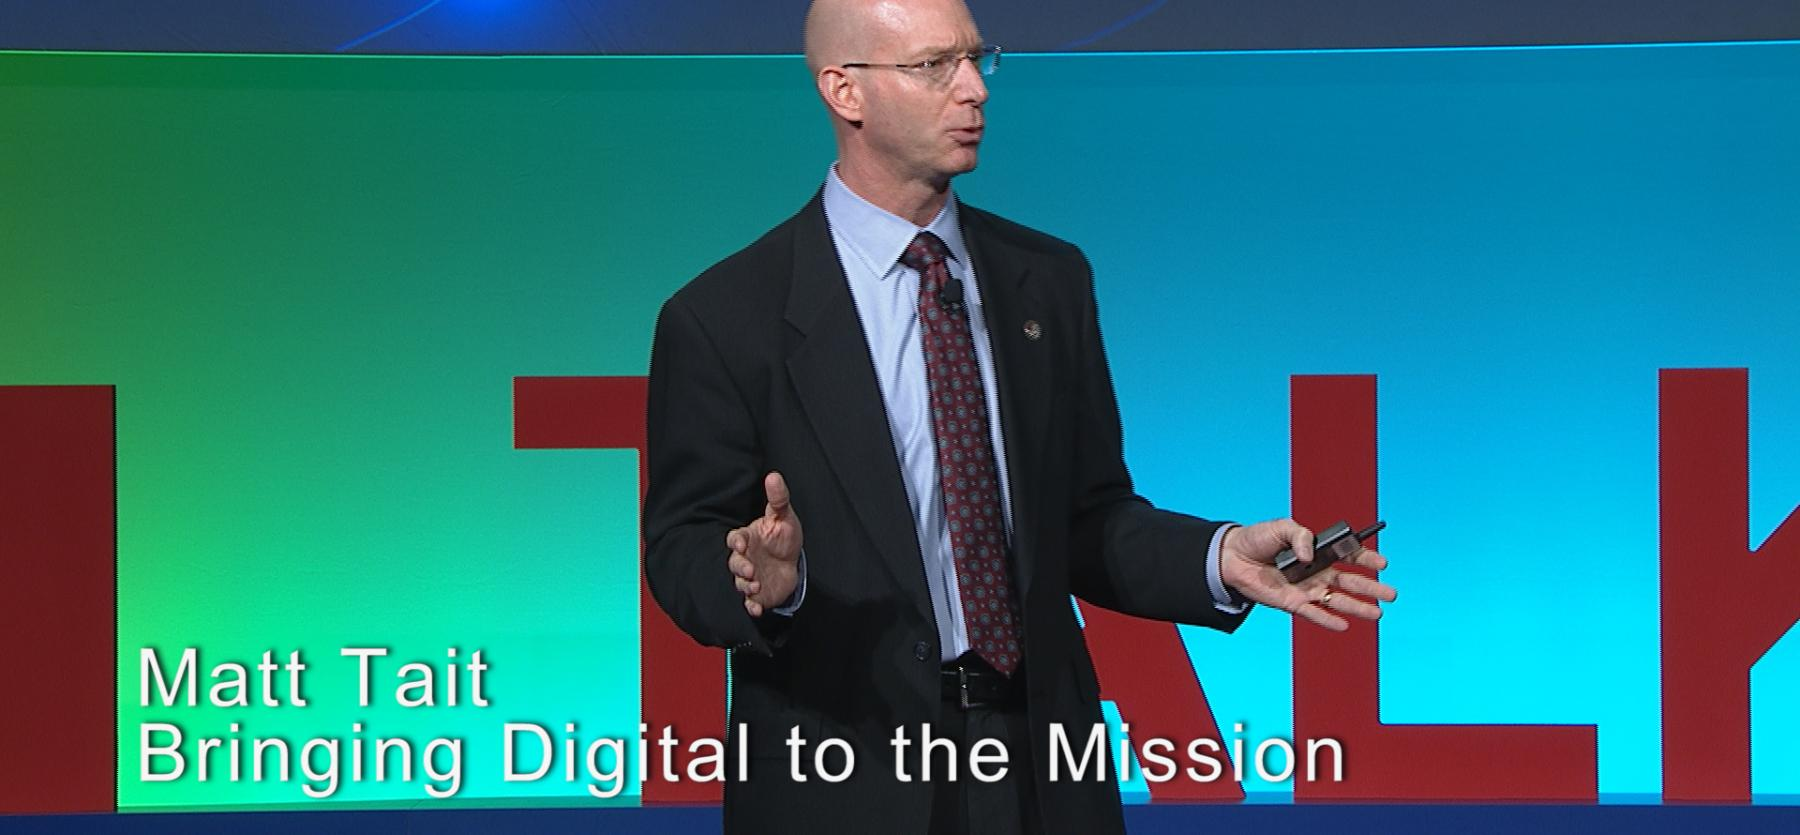 Matt Tait Bringing Digital to the Mission